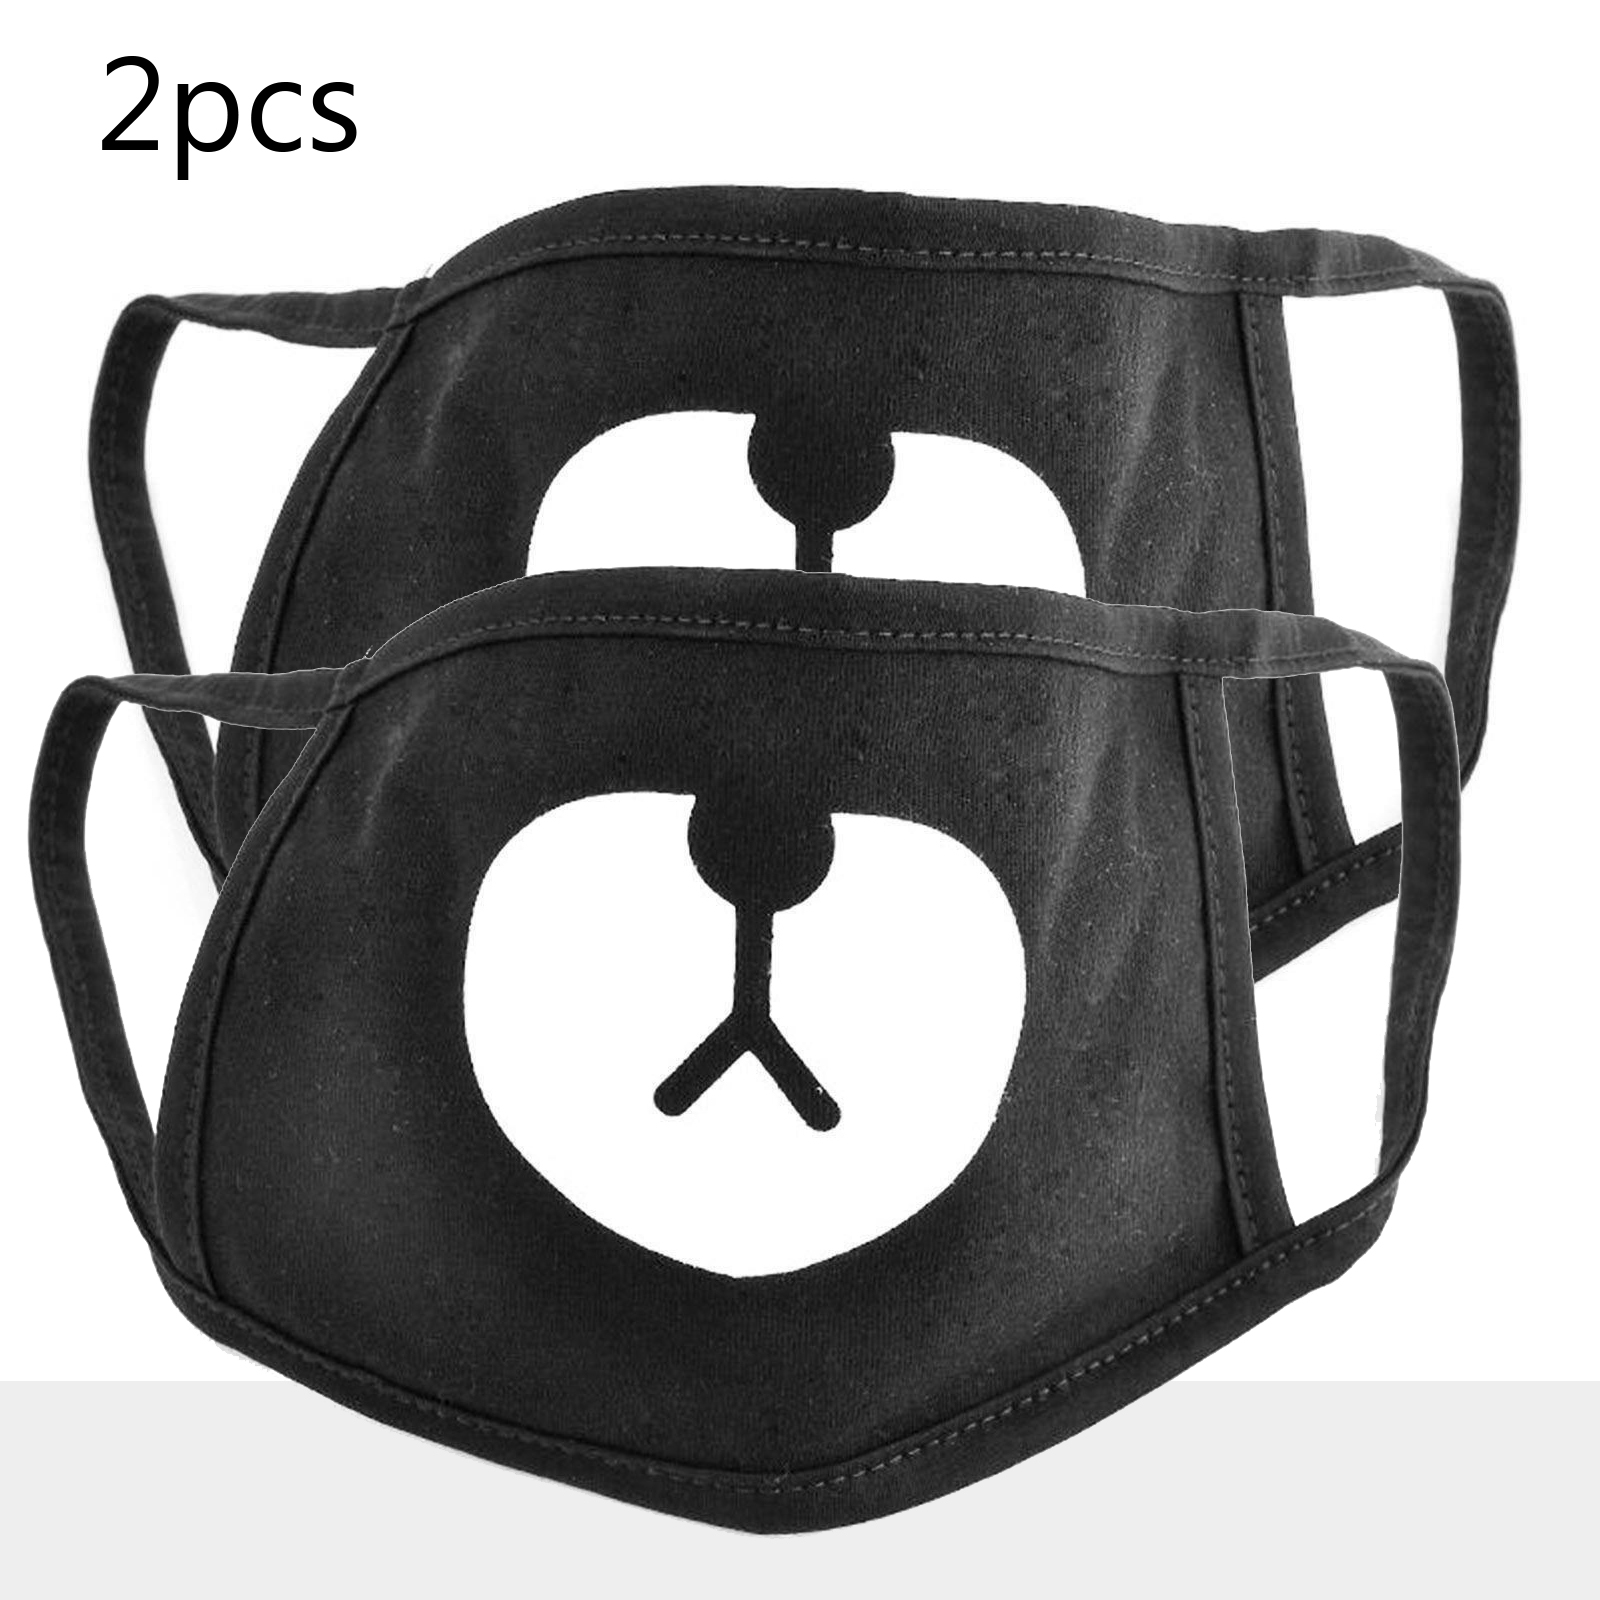 2Pcs Cotton Face Mask Men Women Black Muffle Mouth Mask Unisex Cycling Outdoor Dustproof Masks Outdoor Protection Cool